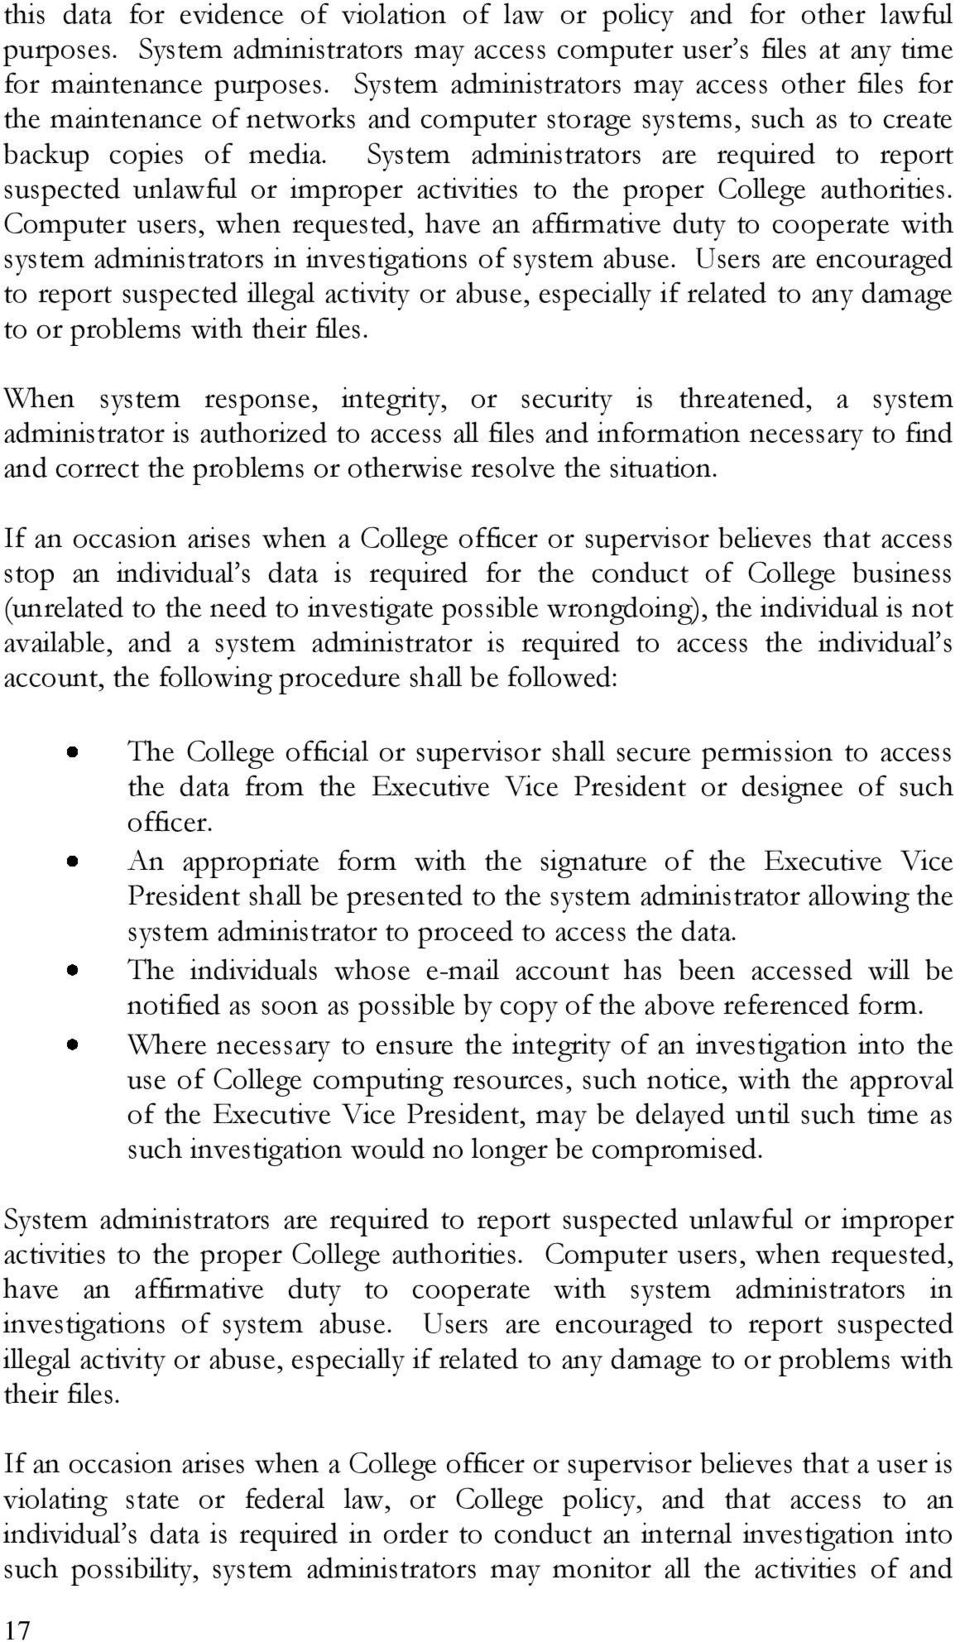 System administrators are required to report suspected unlawful or improper activities to the proper College authorities.